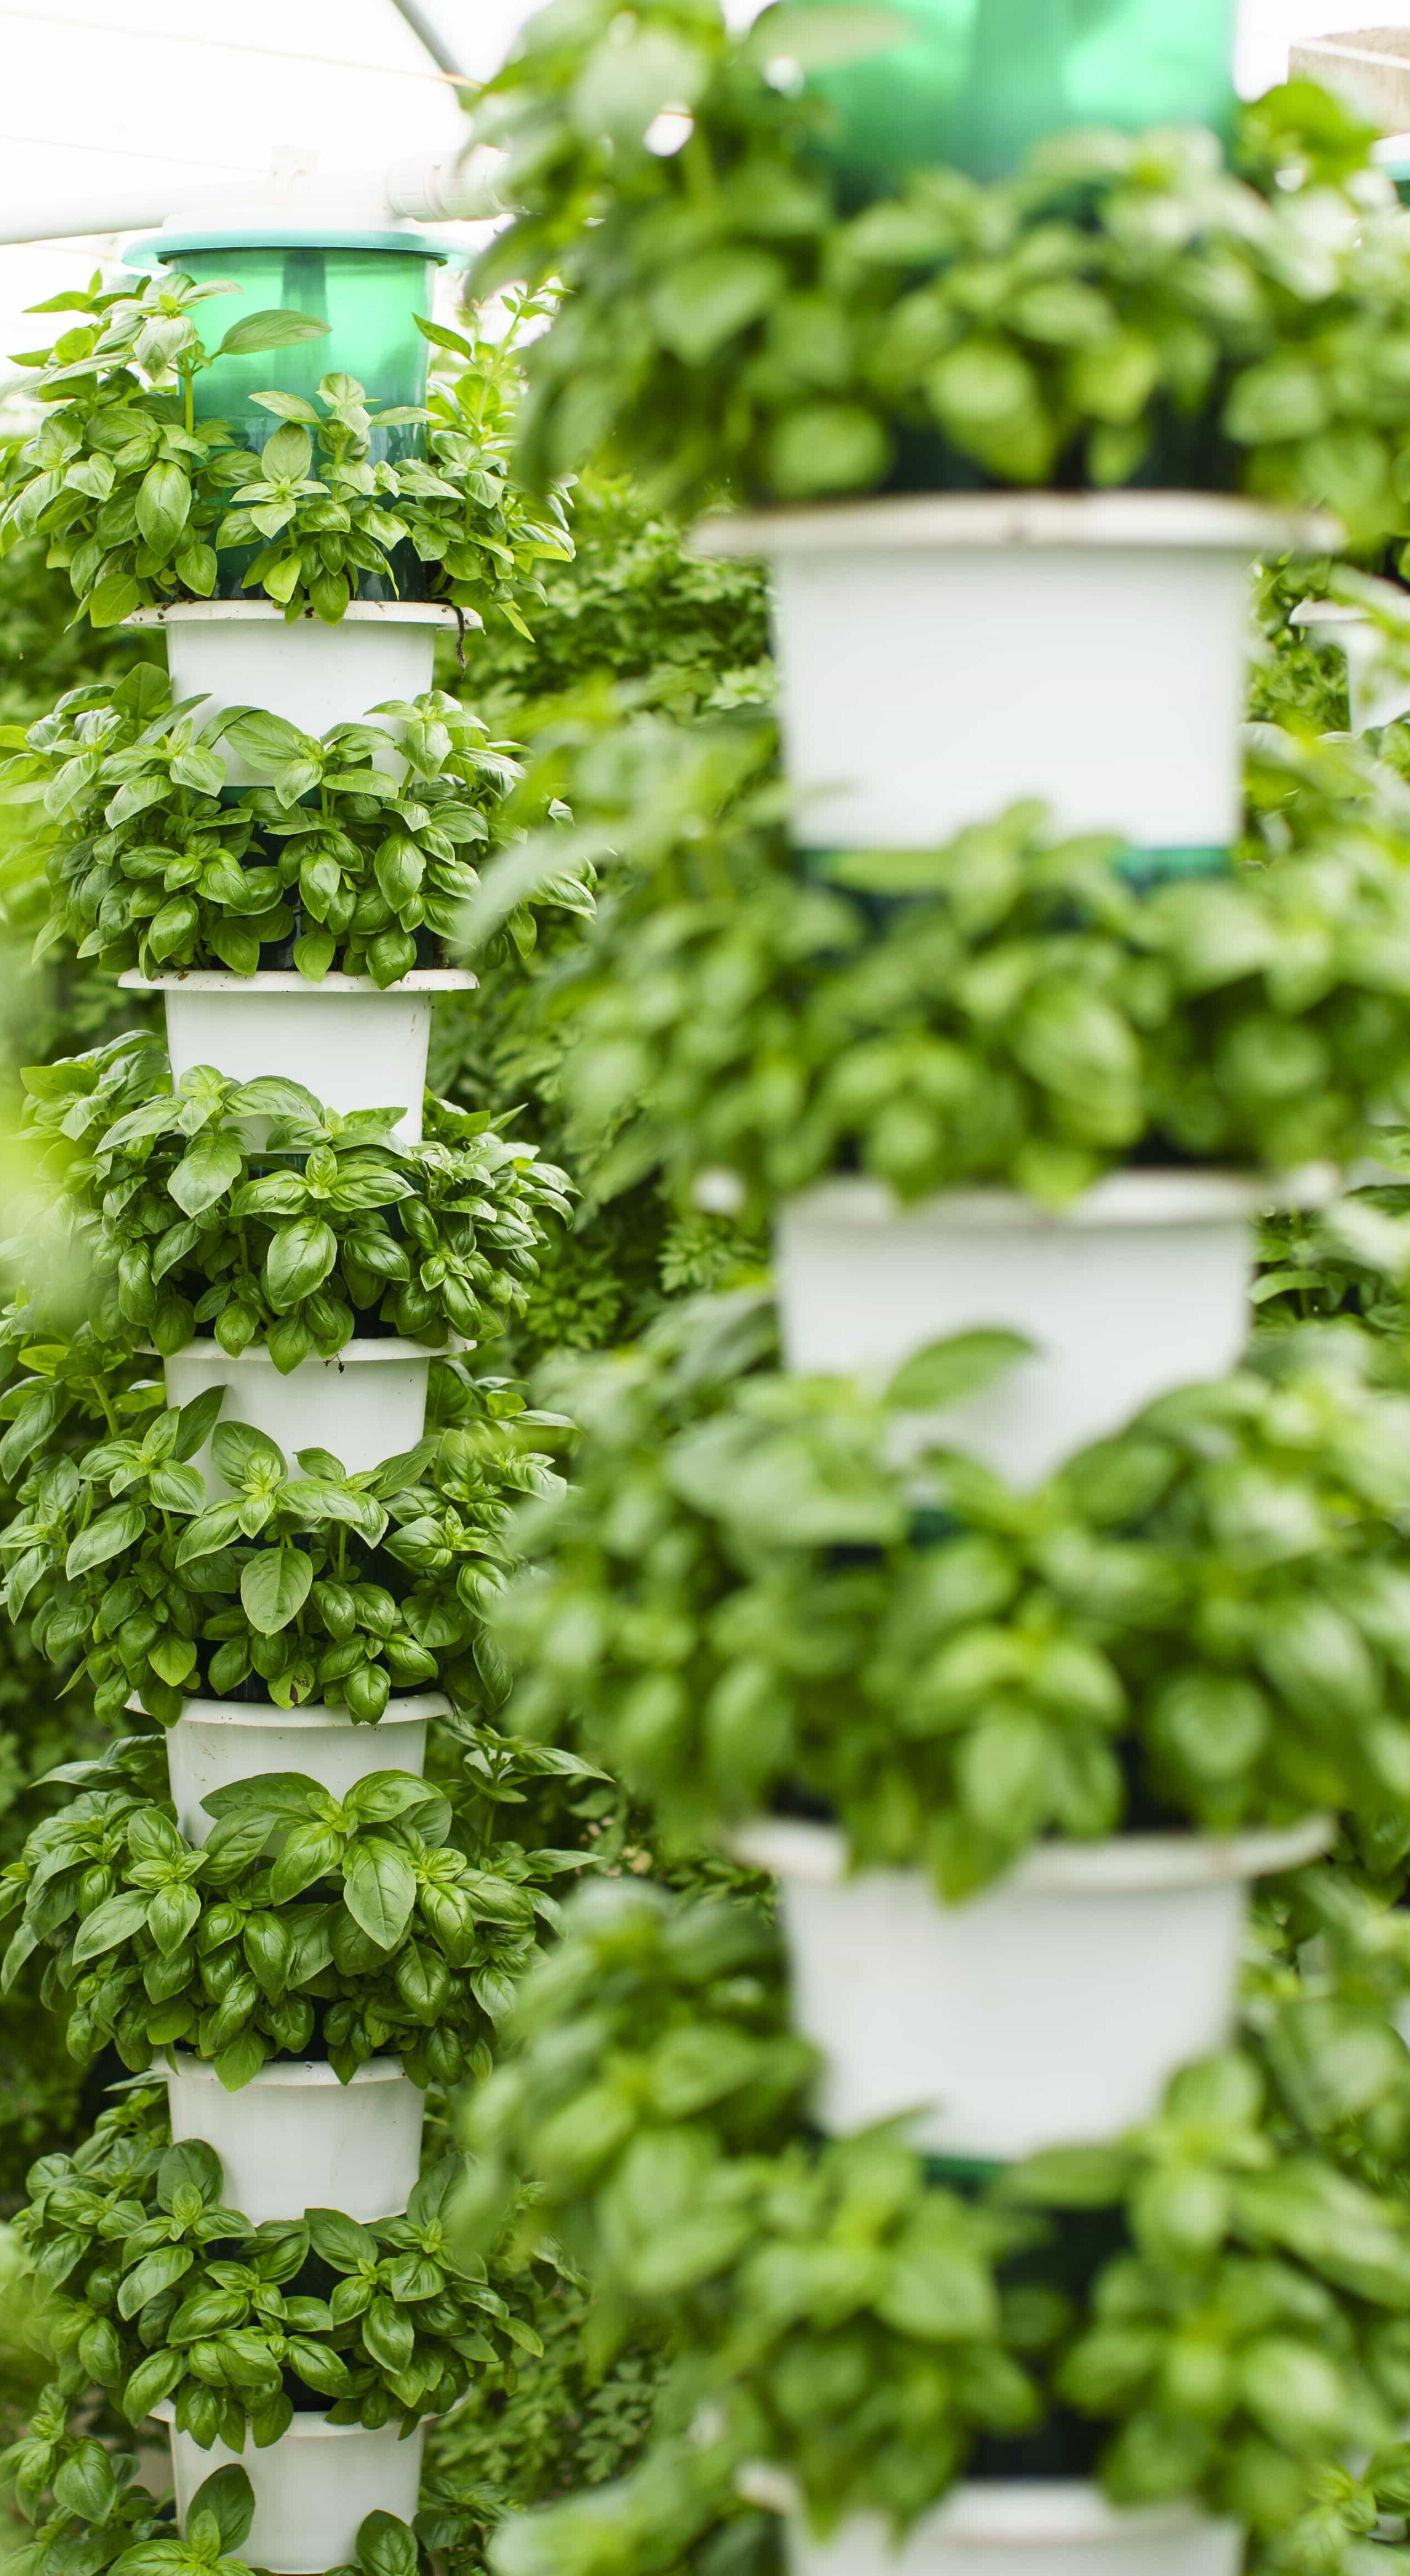 CE agriculture by Saturn Bioponics